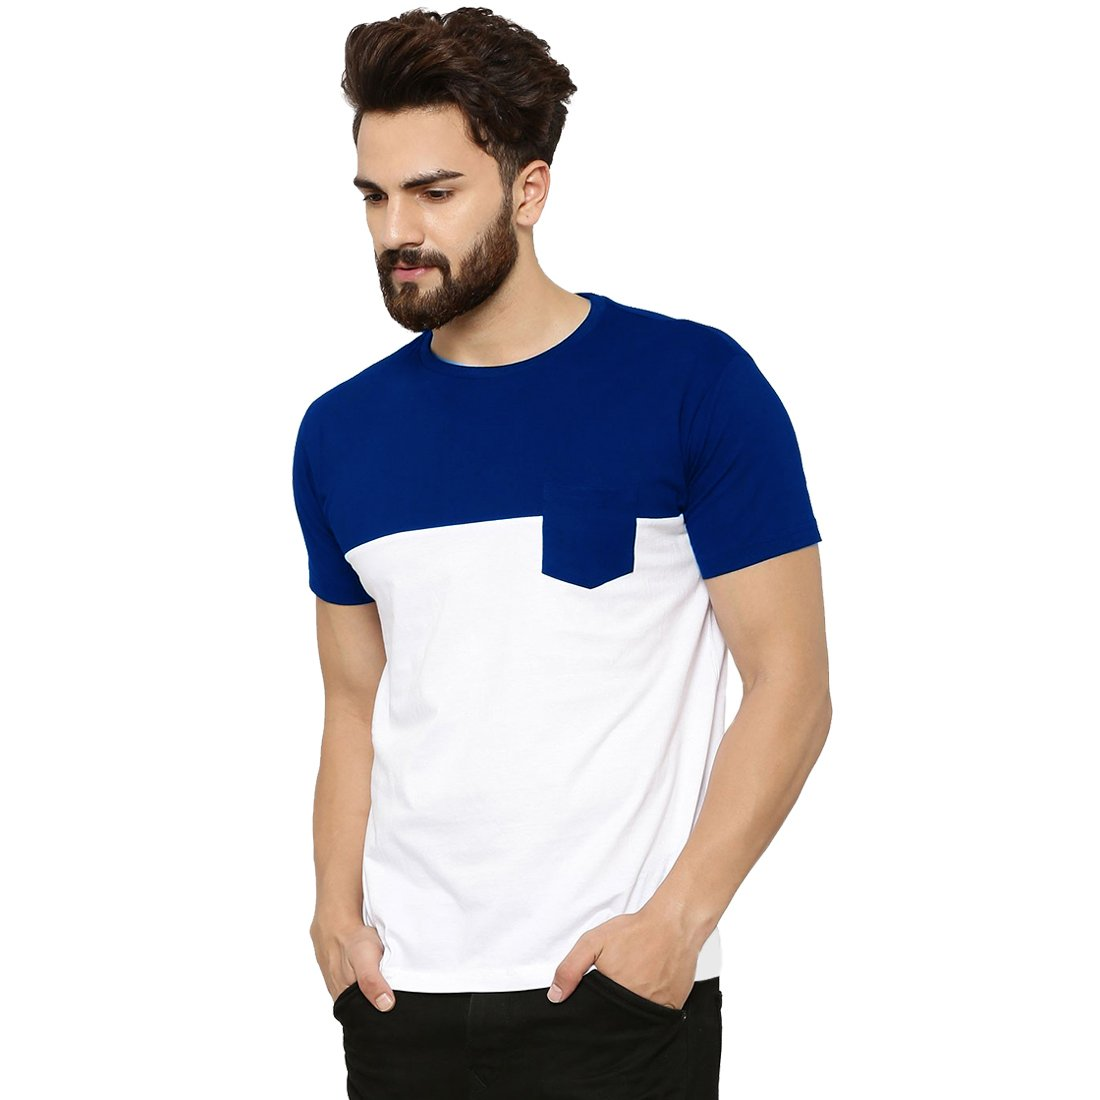 74686d55680 Blue Color Cotton Men's Tshirt - MP-POC-RYL